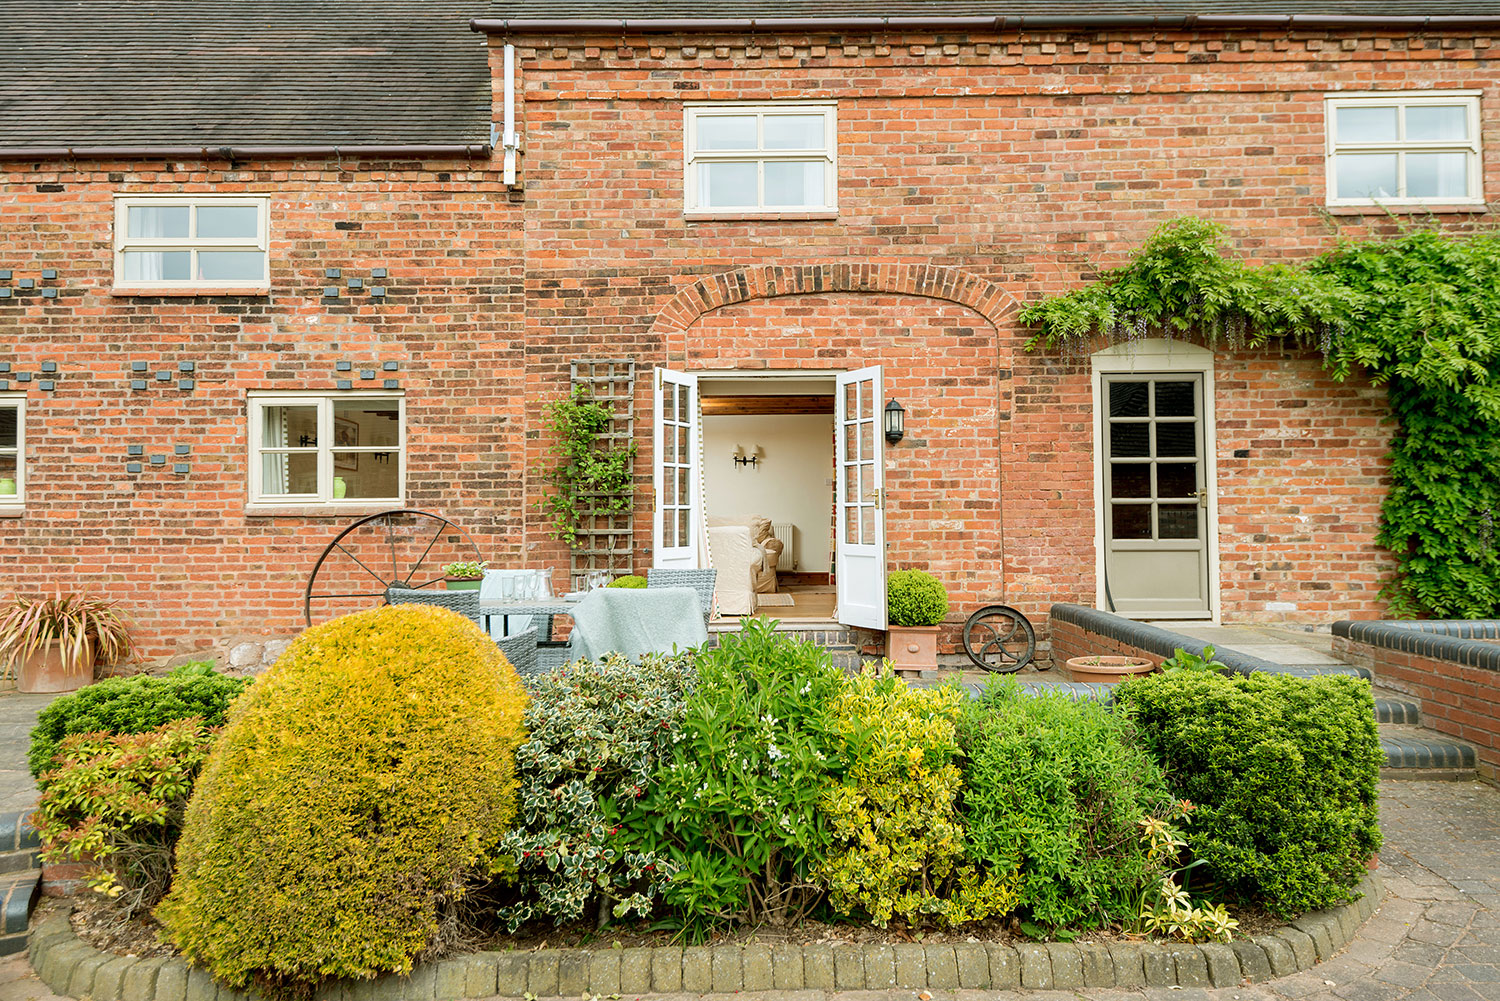 Award-winning luxury holiday cottages in the heart of England | Upper Rectory Farm Cottages